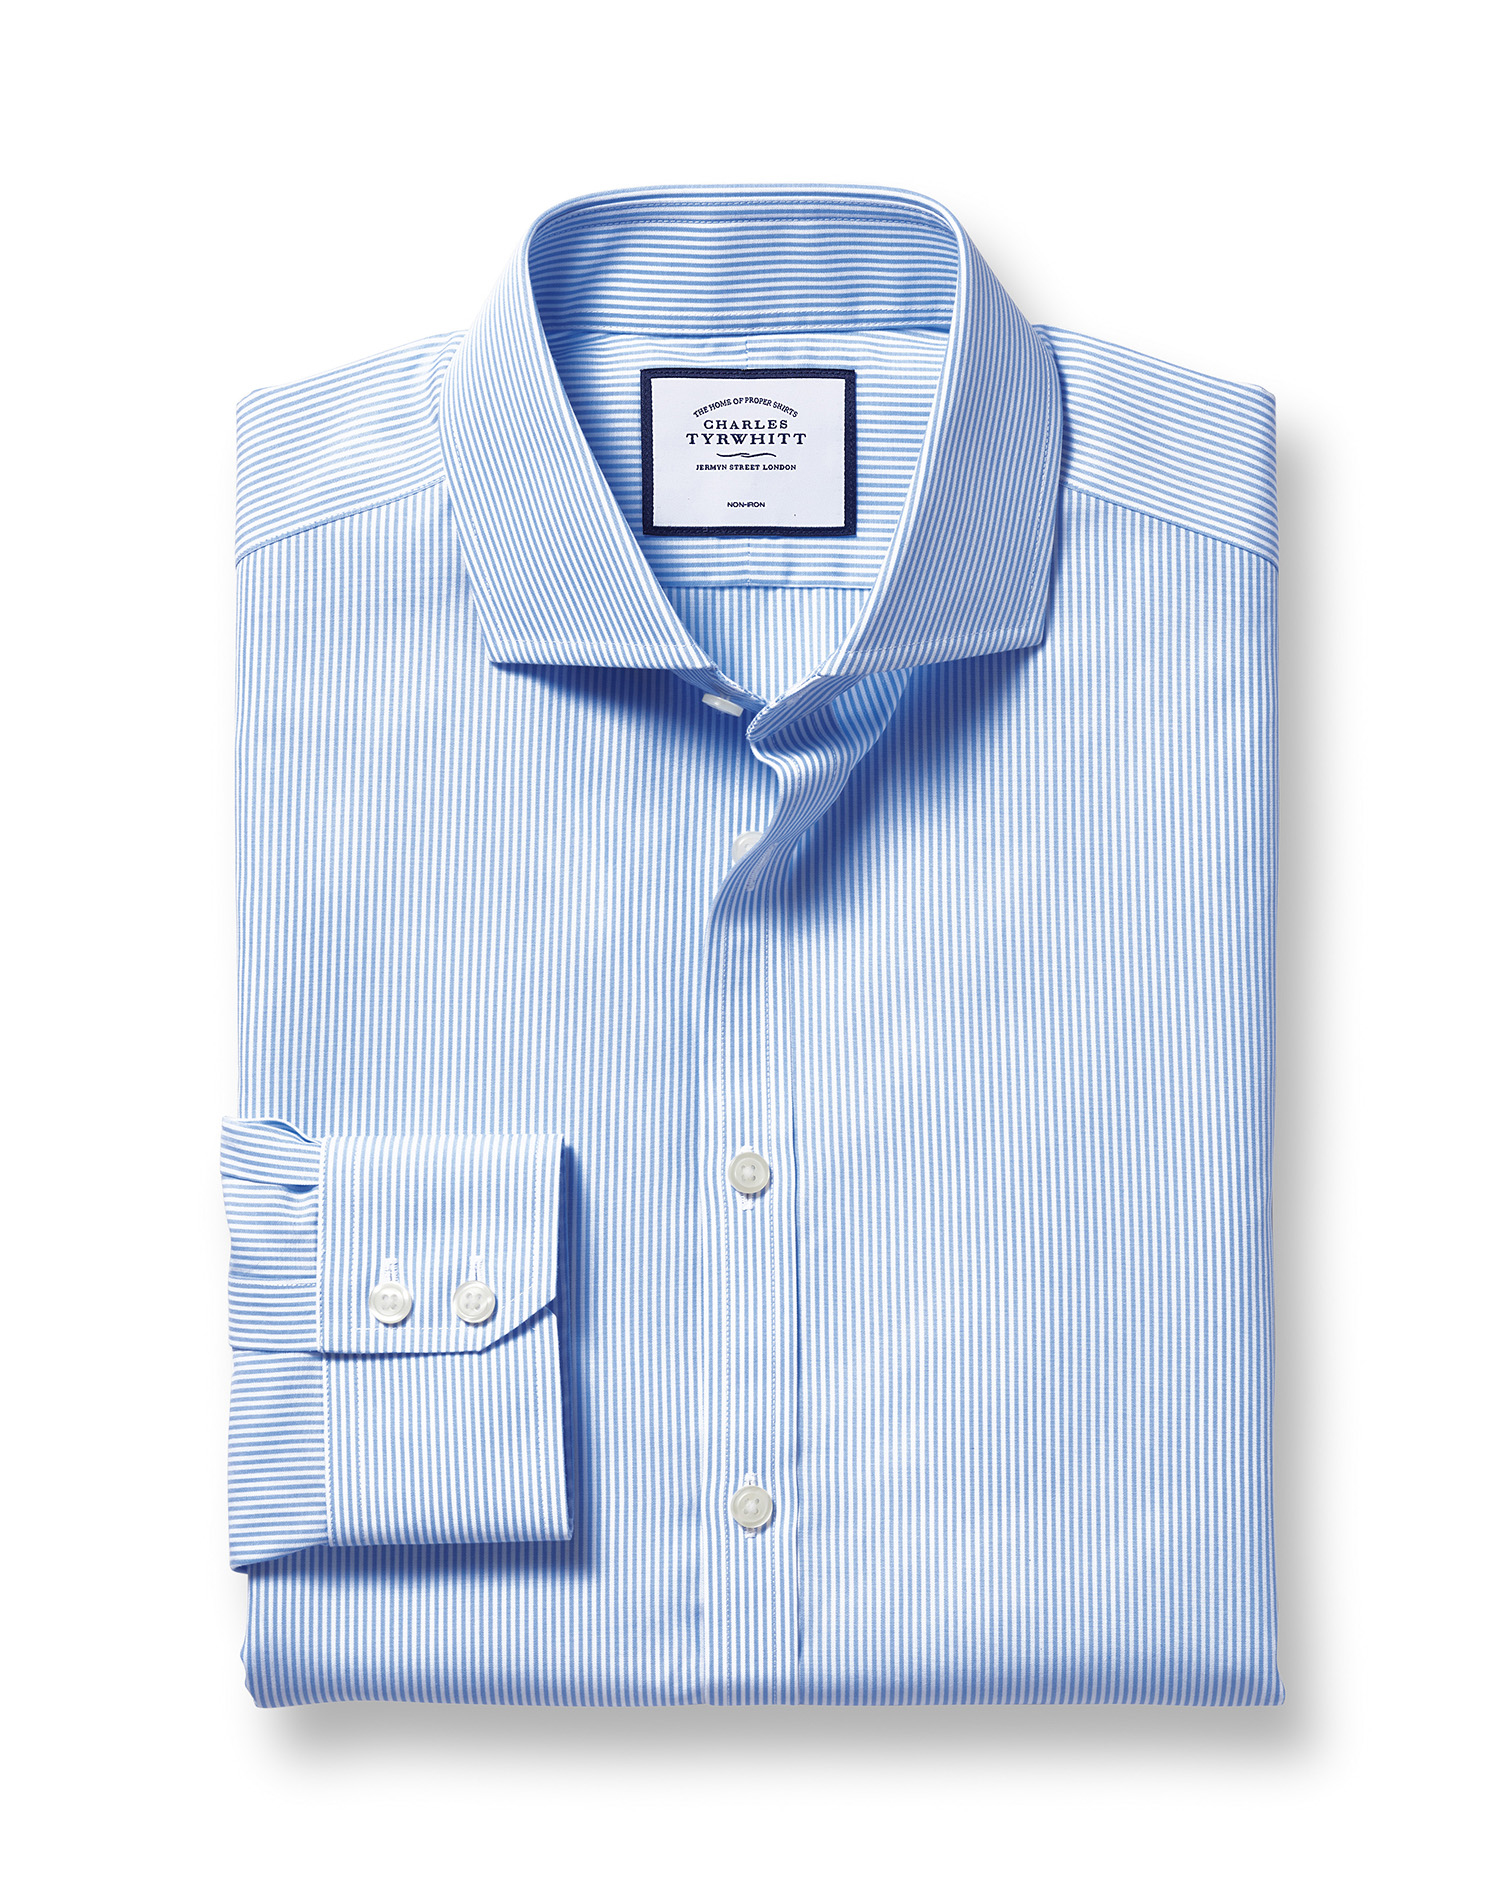 Extra Slim Fit Cutaway Non-Iron Bengal Stripe Sky Blue Cotton Formal Shirt Single Cuff Size 16/38 by